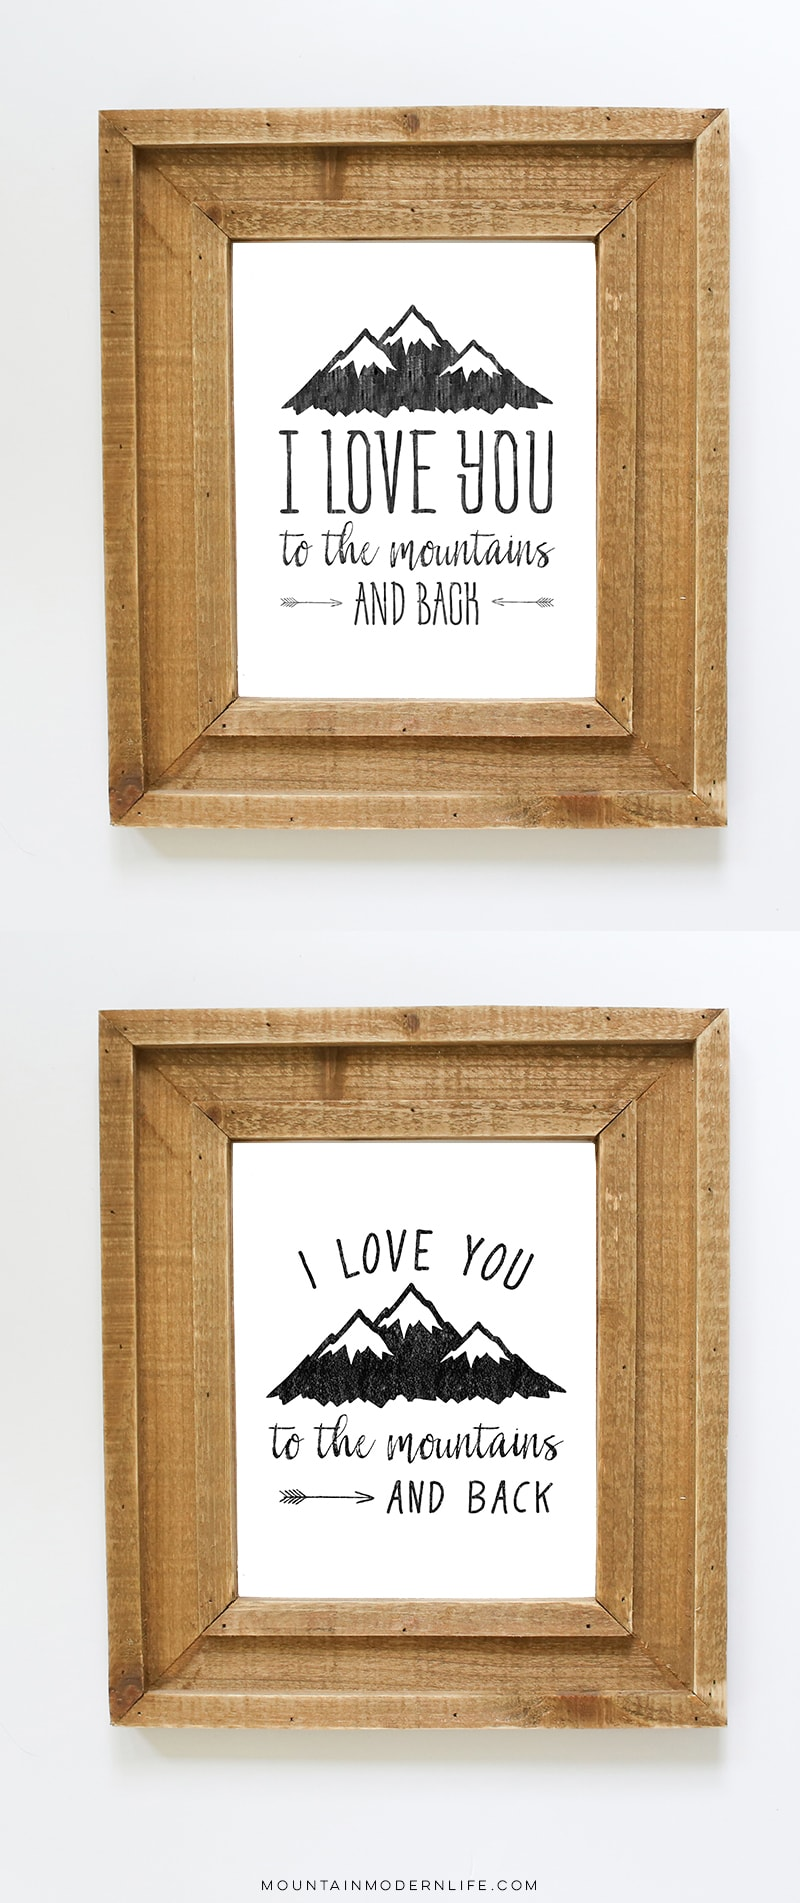 printable-design-i-love-you-to-the-mountains-and-back-mountainmodernlife.com